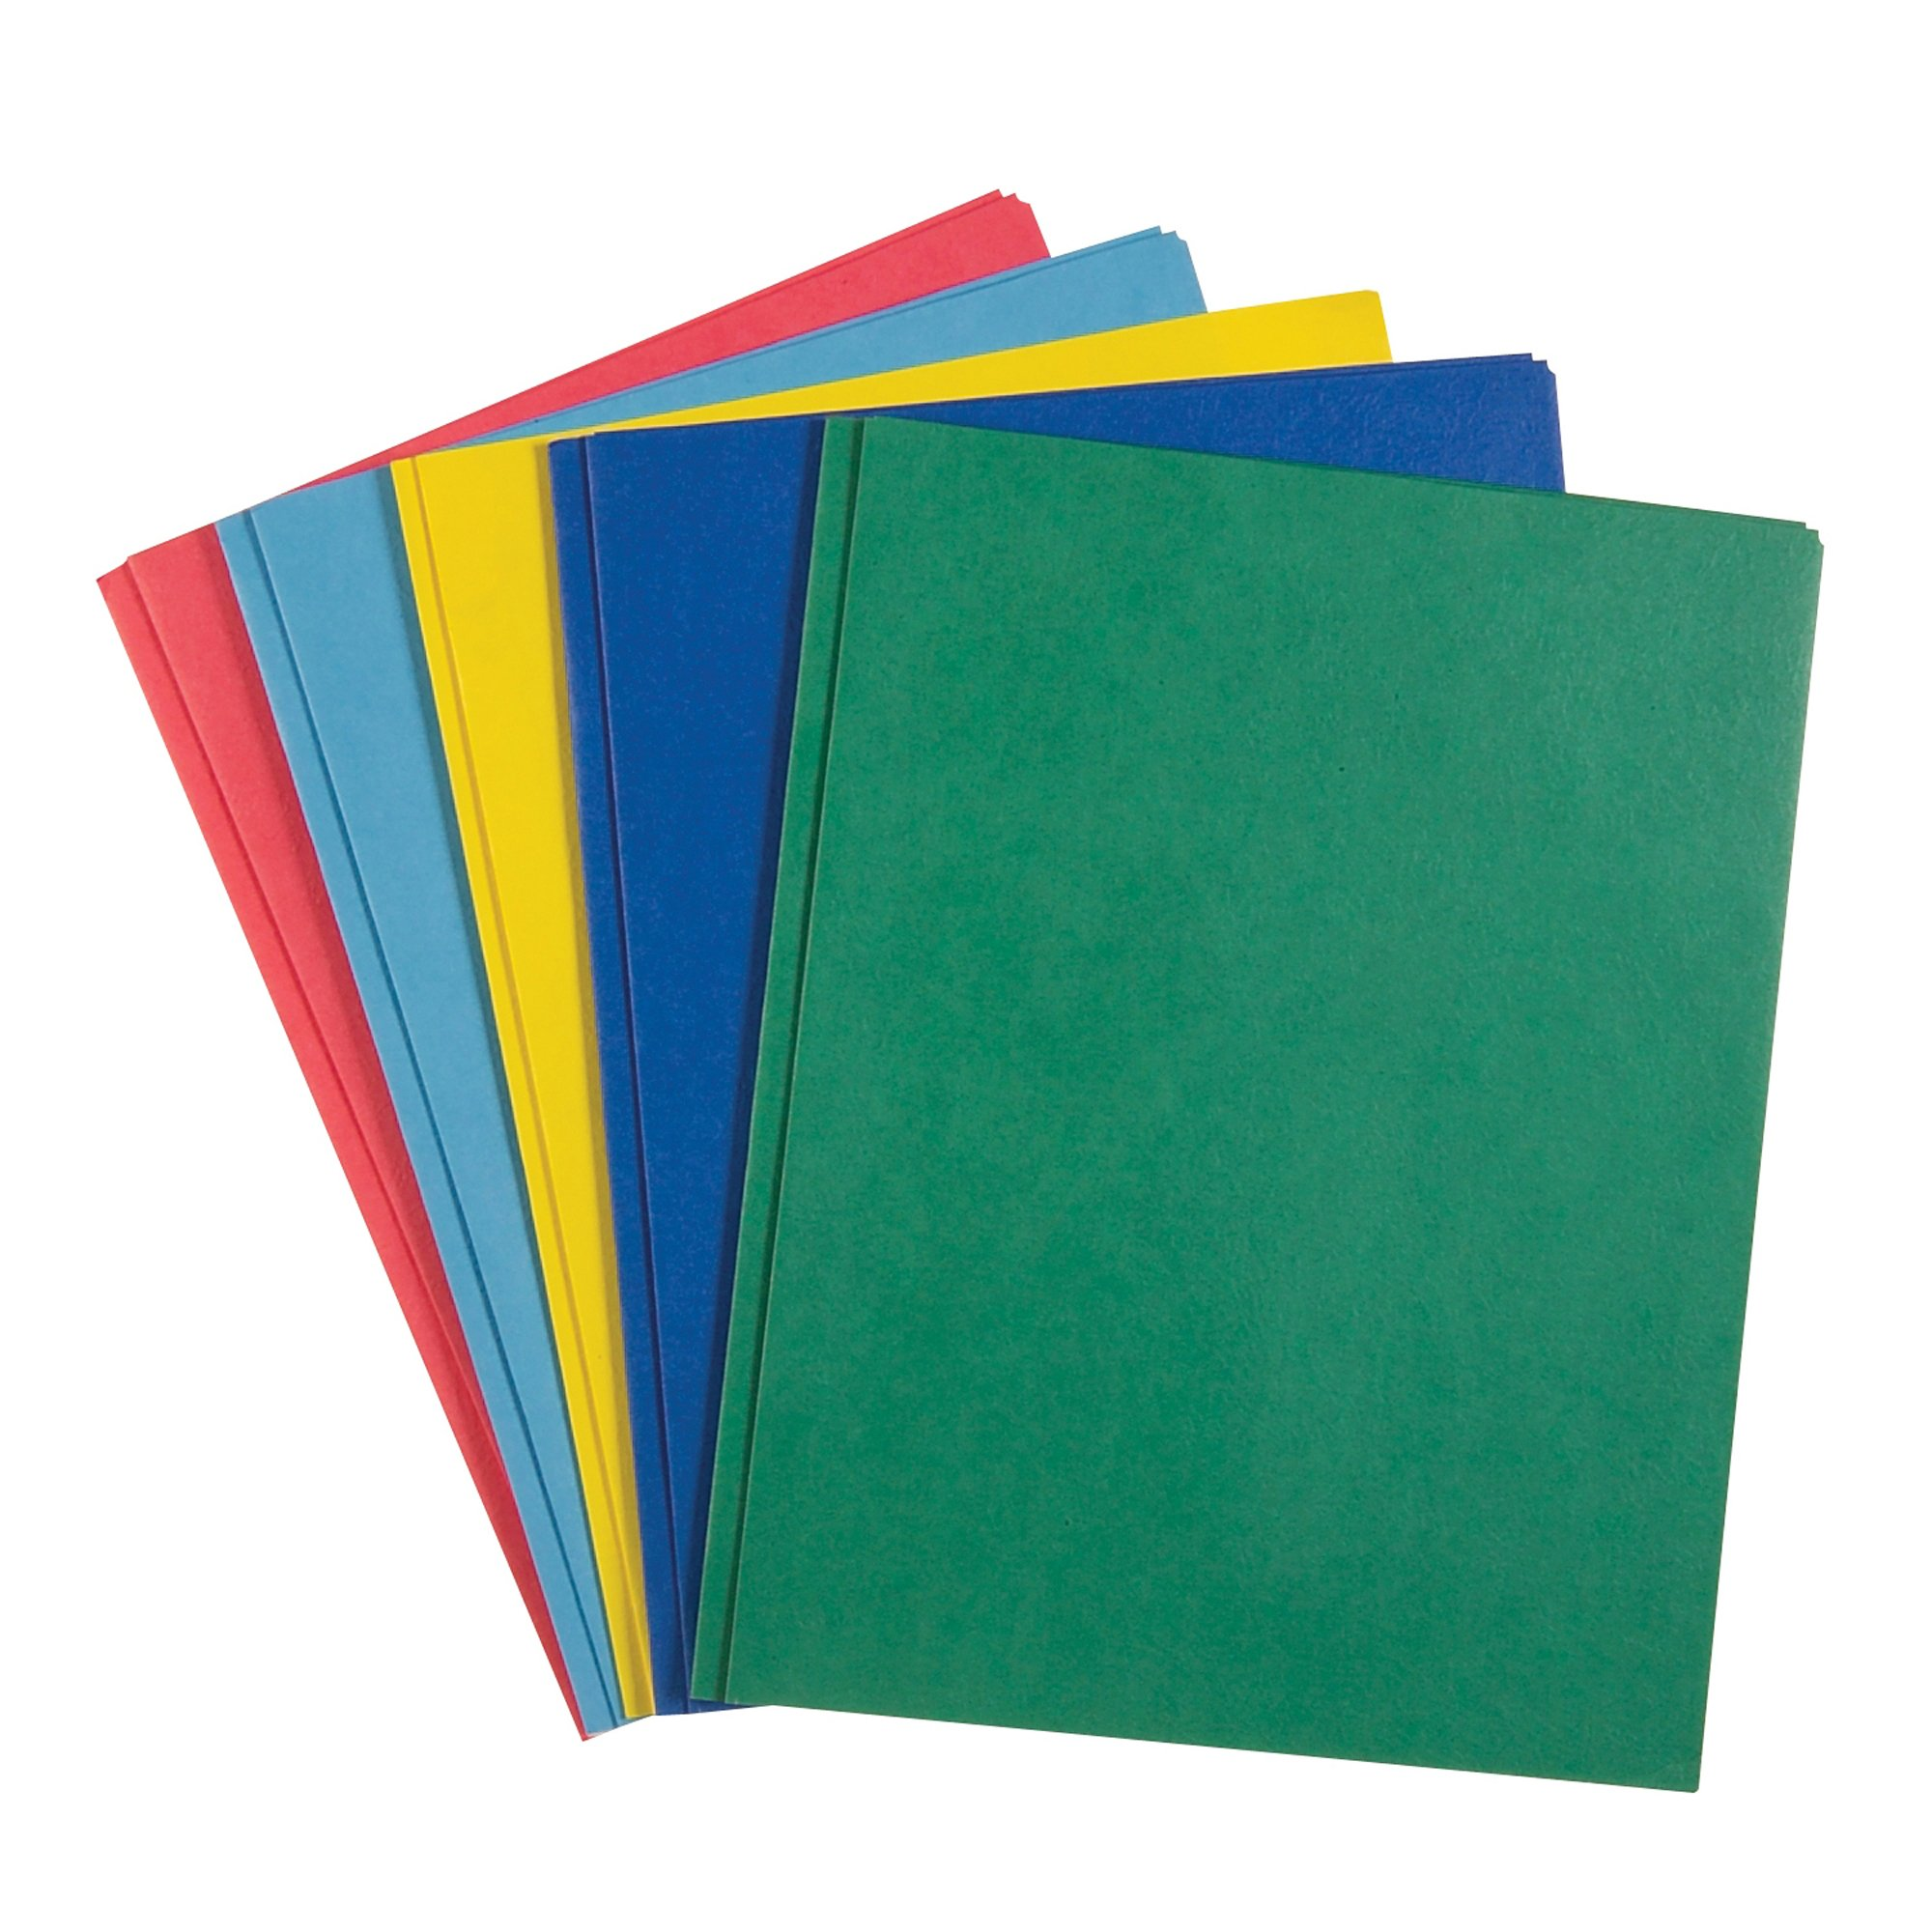 Roaring Spring Embossed 2-Pocket Folders with Prongs. 25/box. Assorted Colors